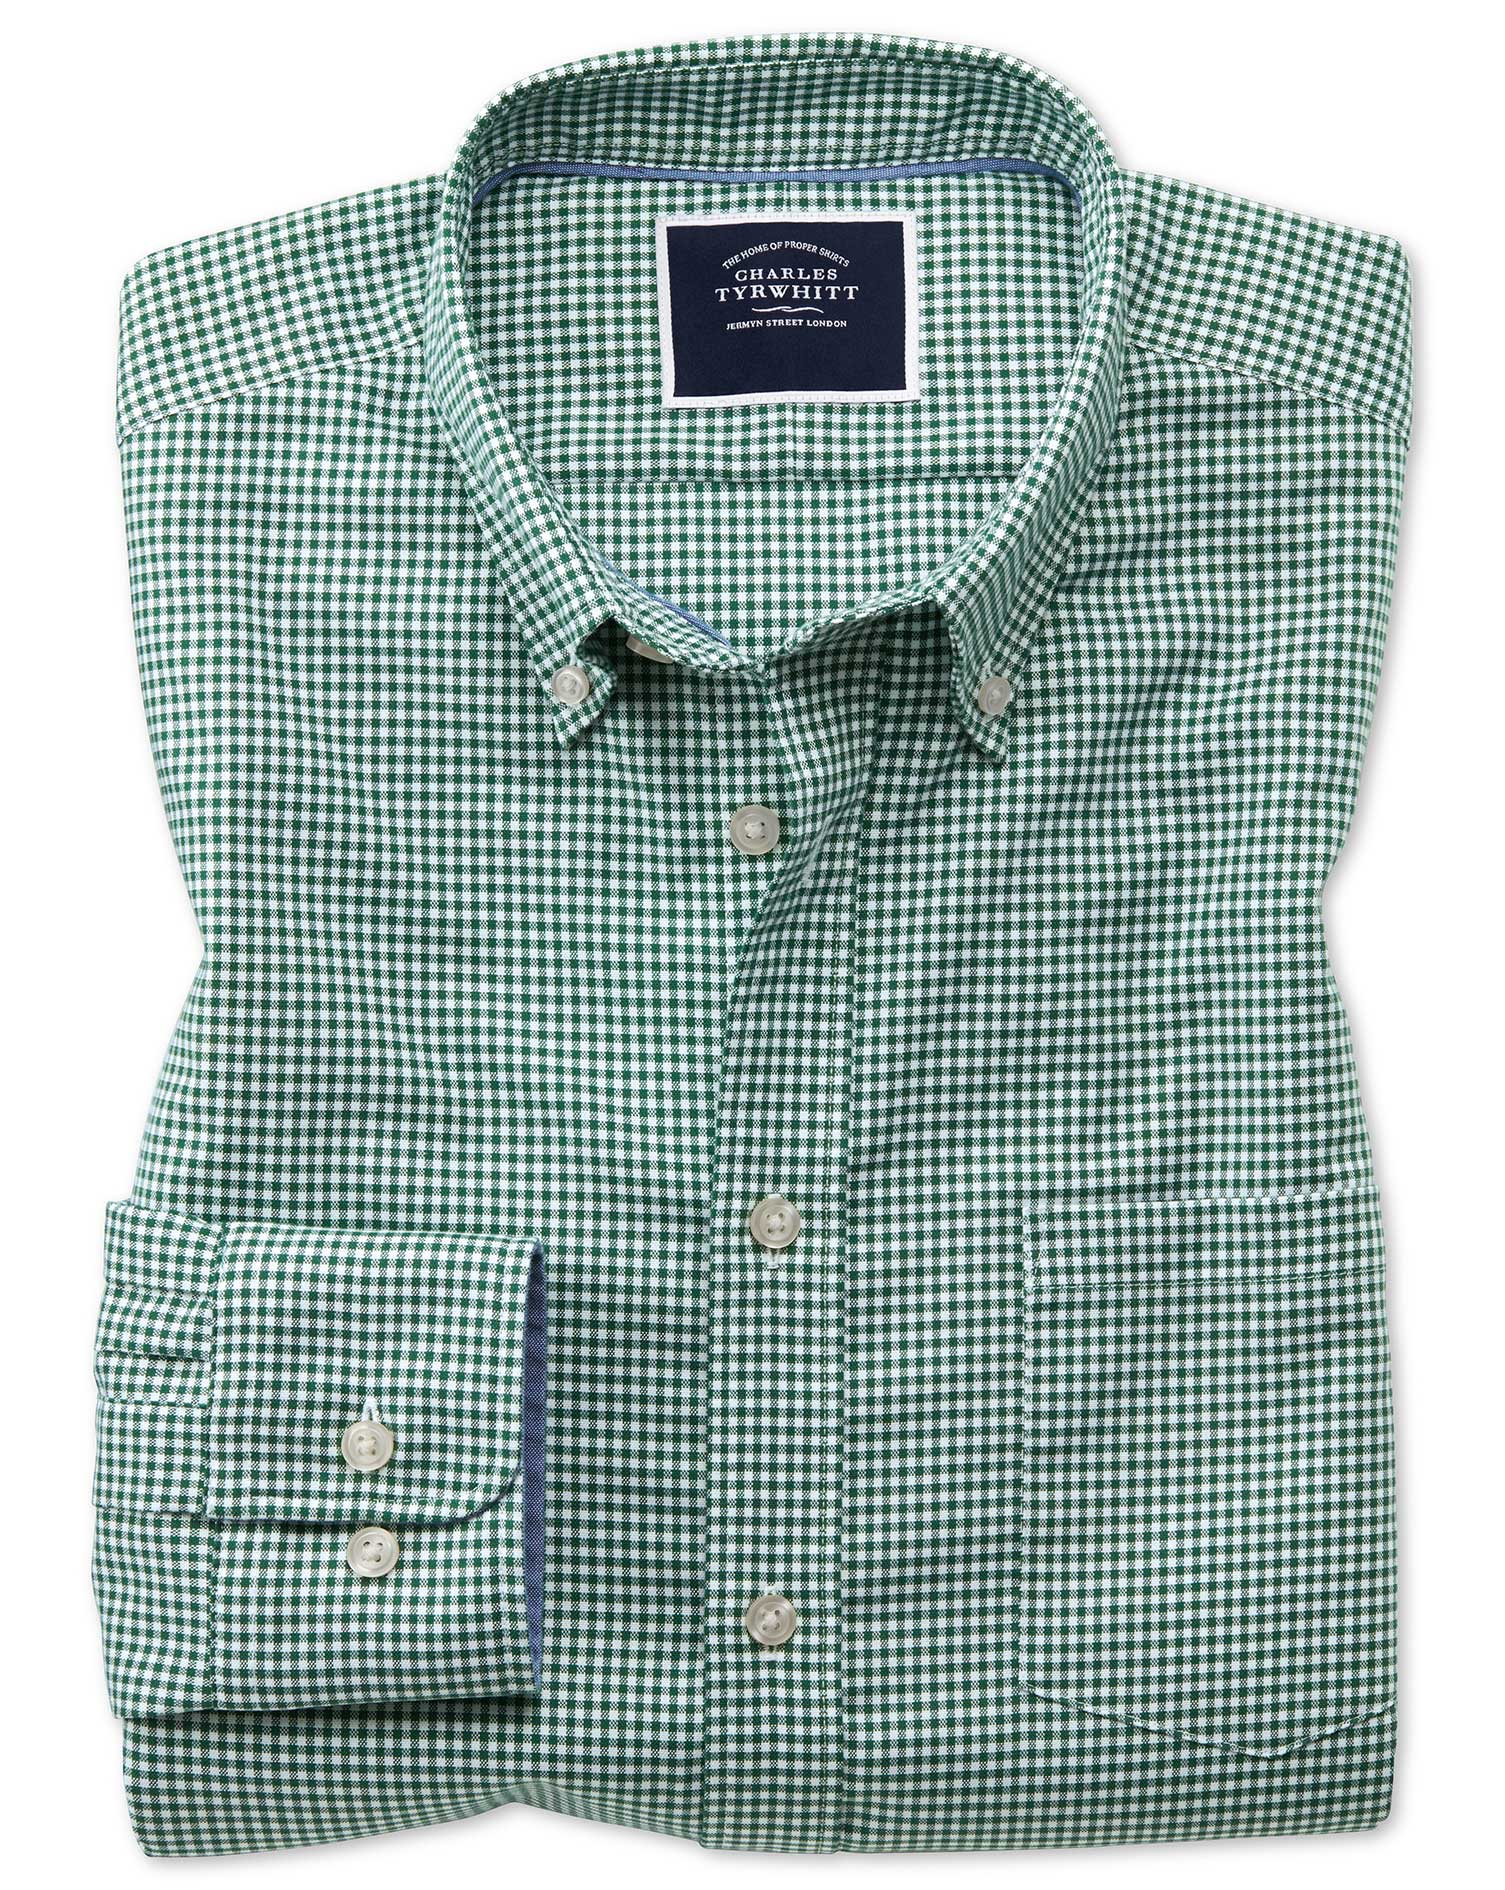 Slim Fit Dark Green Gingham Soft Washed Non-Iron Stretch Cotton Shirt Single Cuff Size XXL by Charle